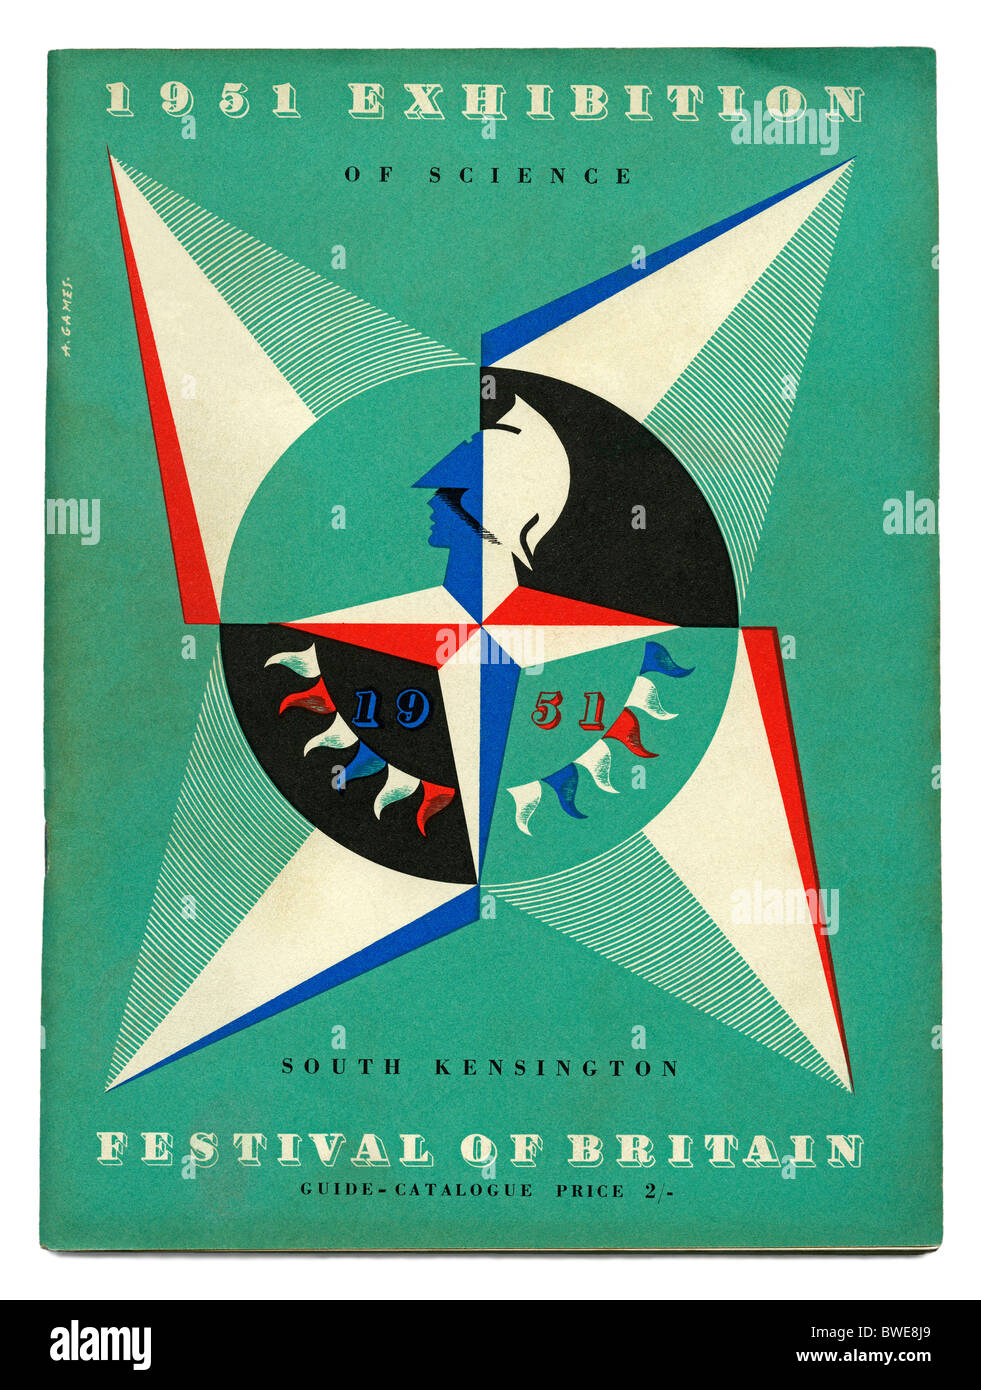 Cover of the official guide book to the 1951 Festival of Britain Exhibition of Science, South Kensington, London - Stock Image